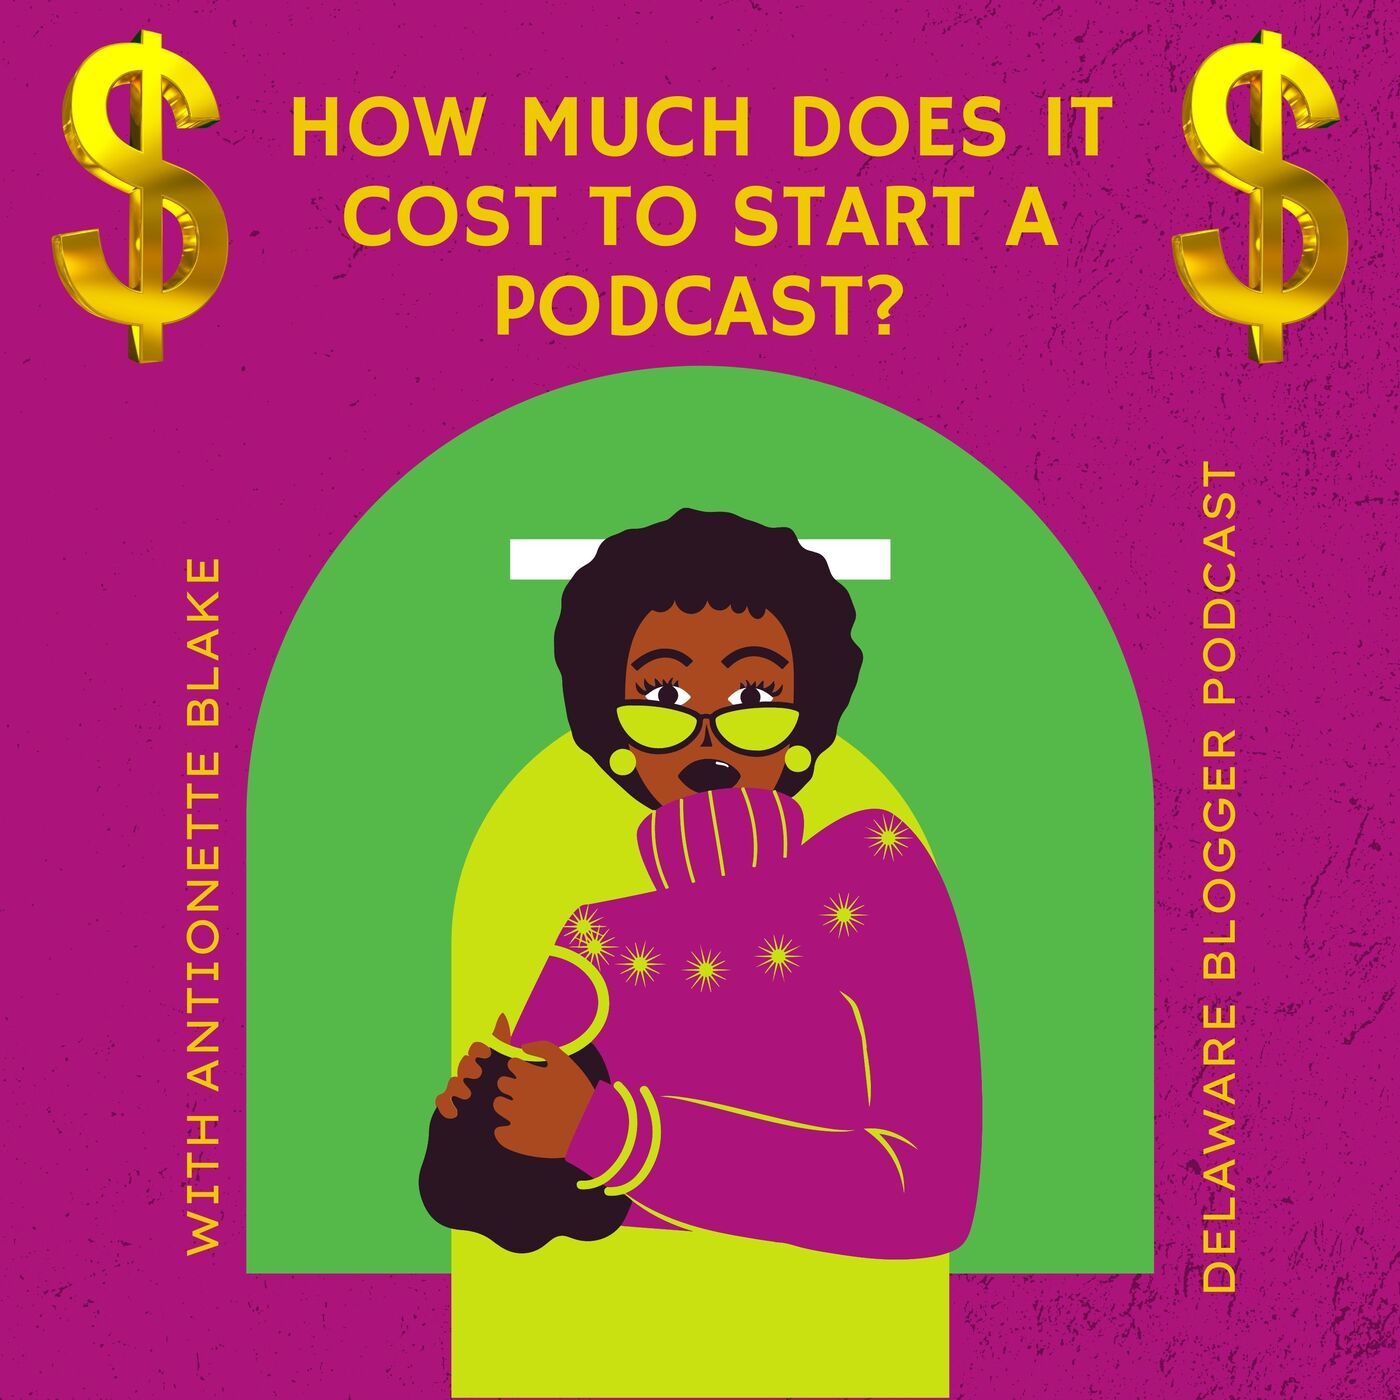 How Much Does it Cost to Start a Podcast?